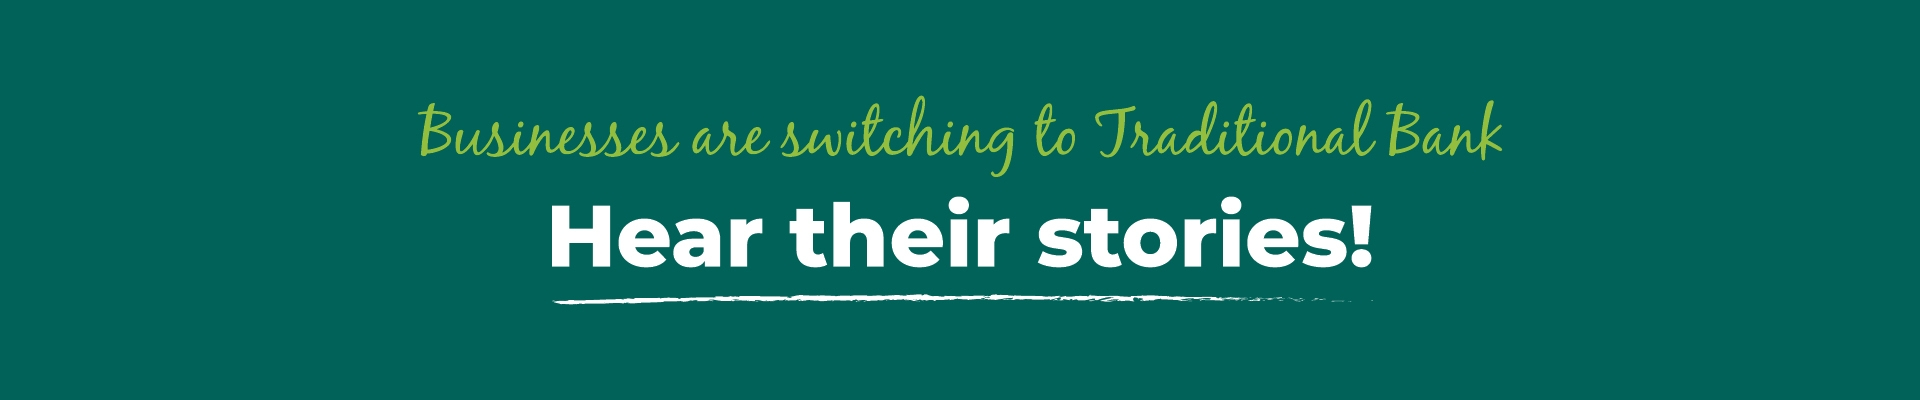 Businesses are switching to Traditional Bank. Hear their stories. Banner